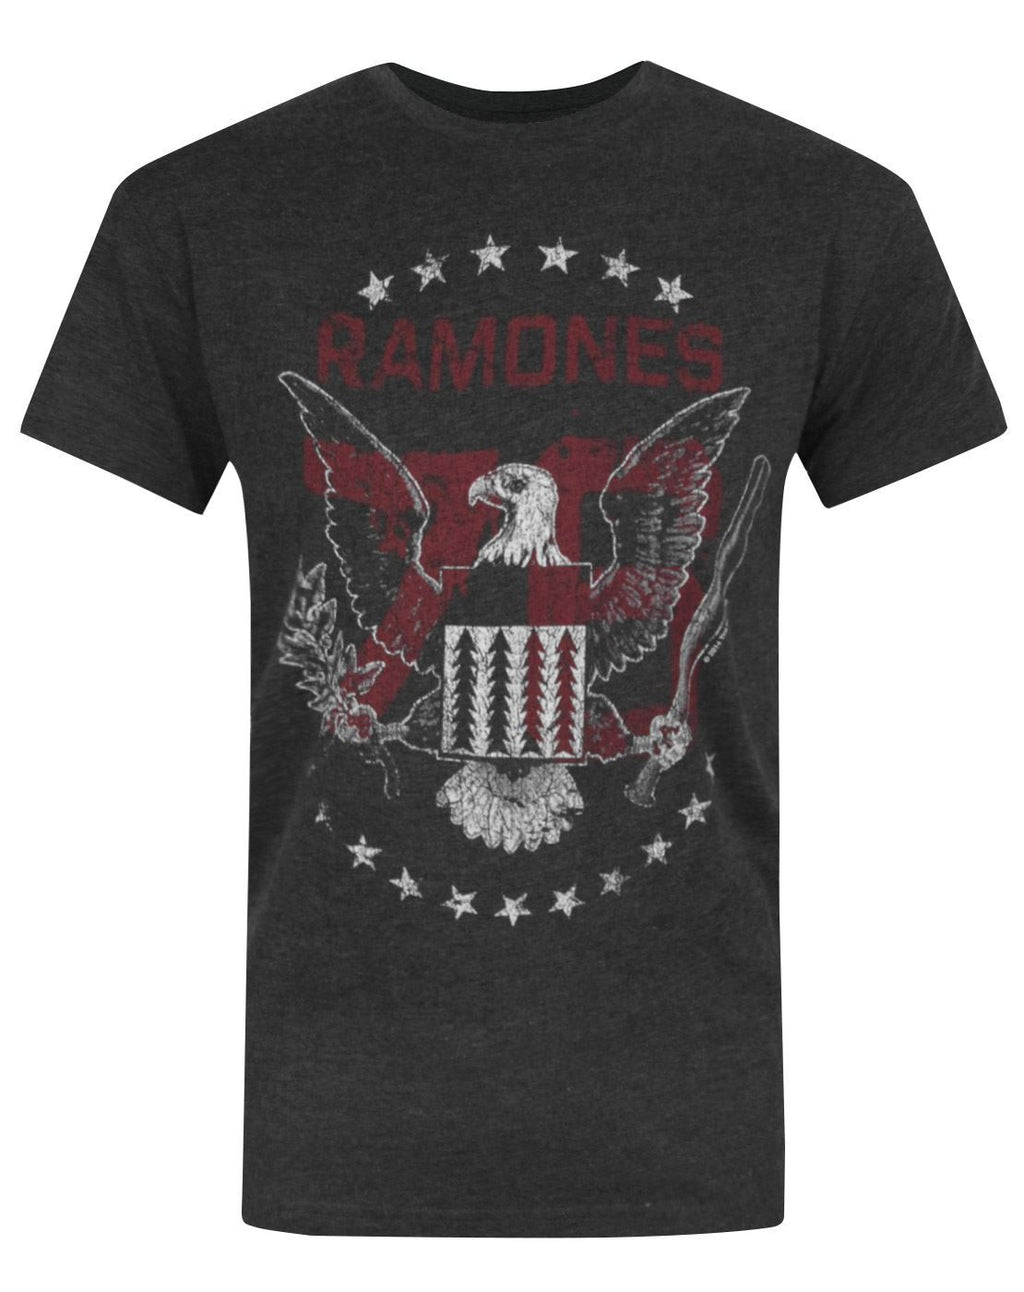 Amplified Ramones 76 Tour Men's T-Shirt